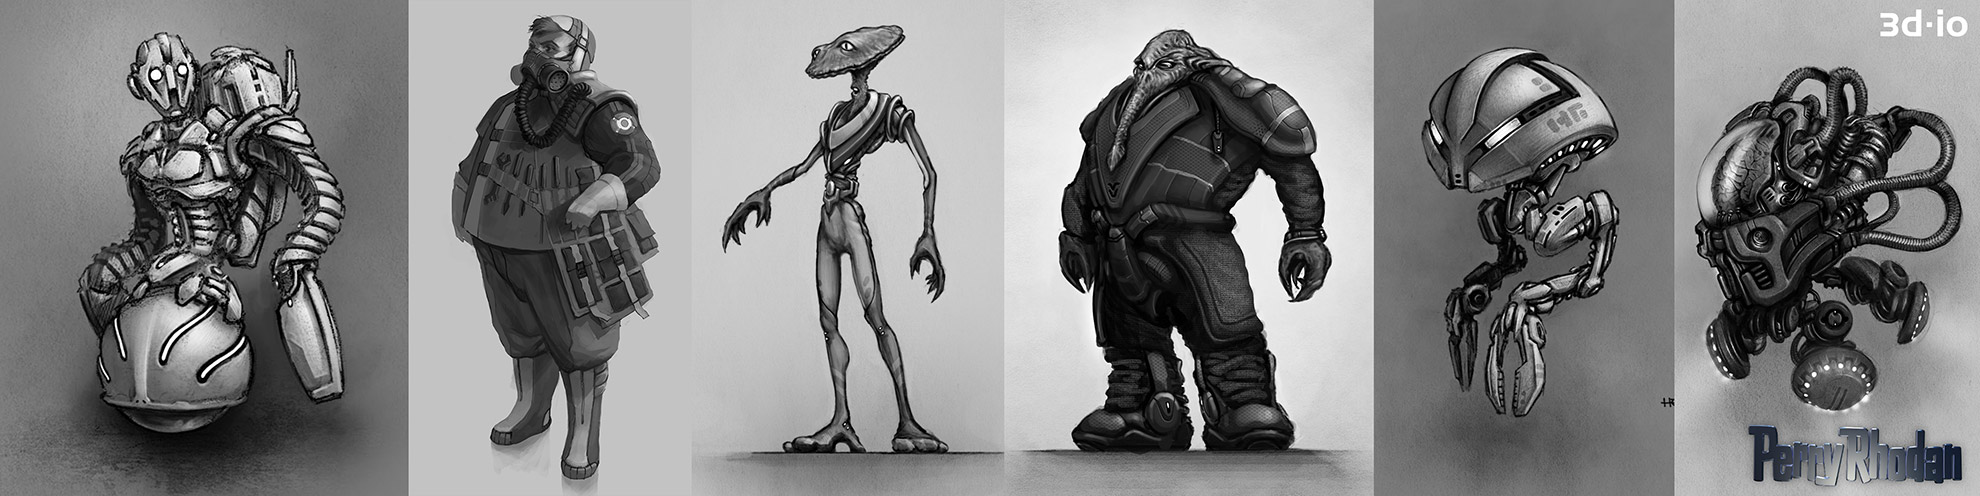 3d-io perry rhodan characters concept